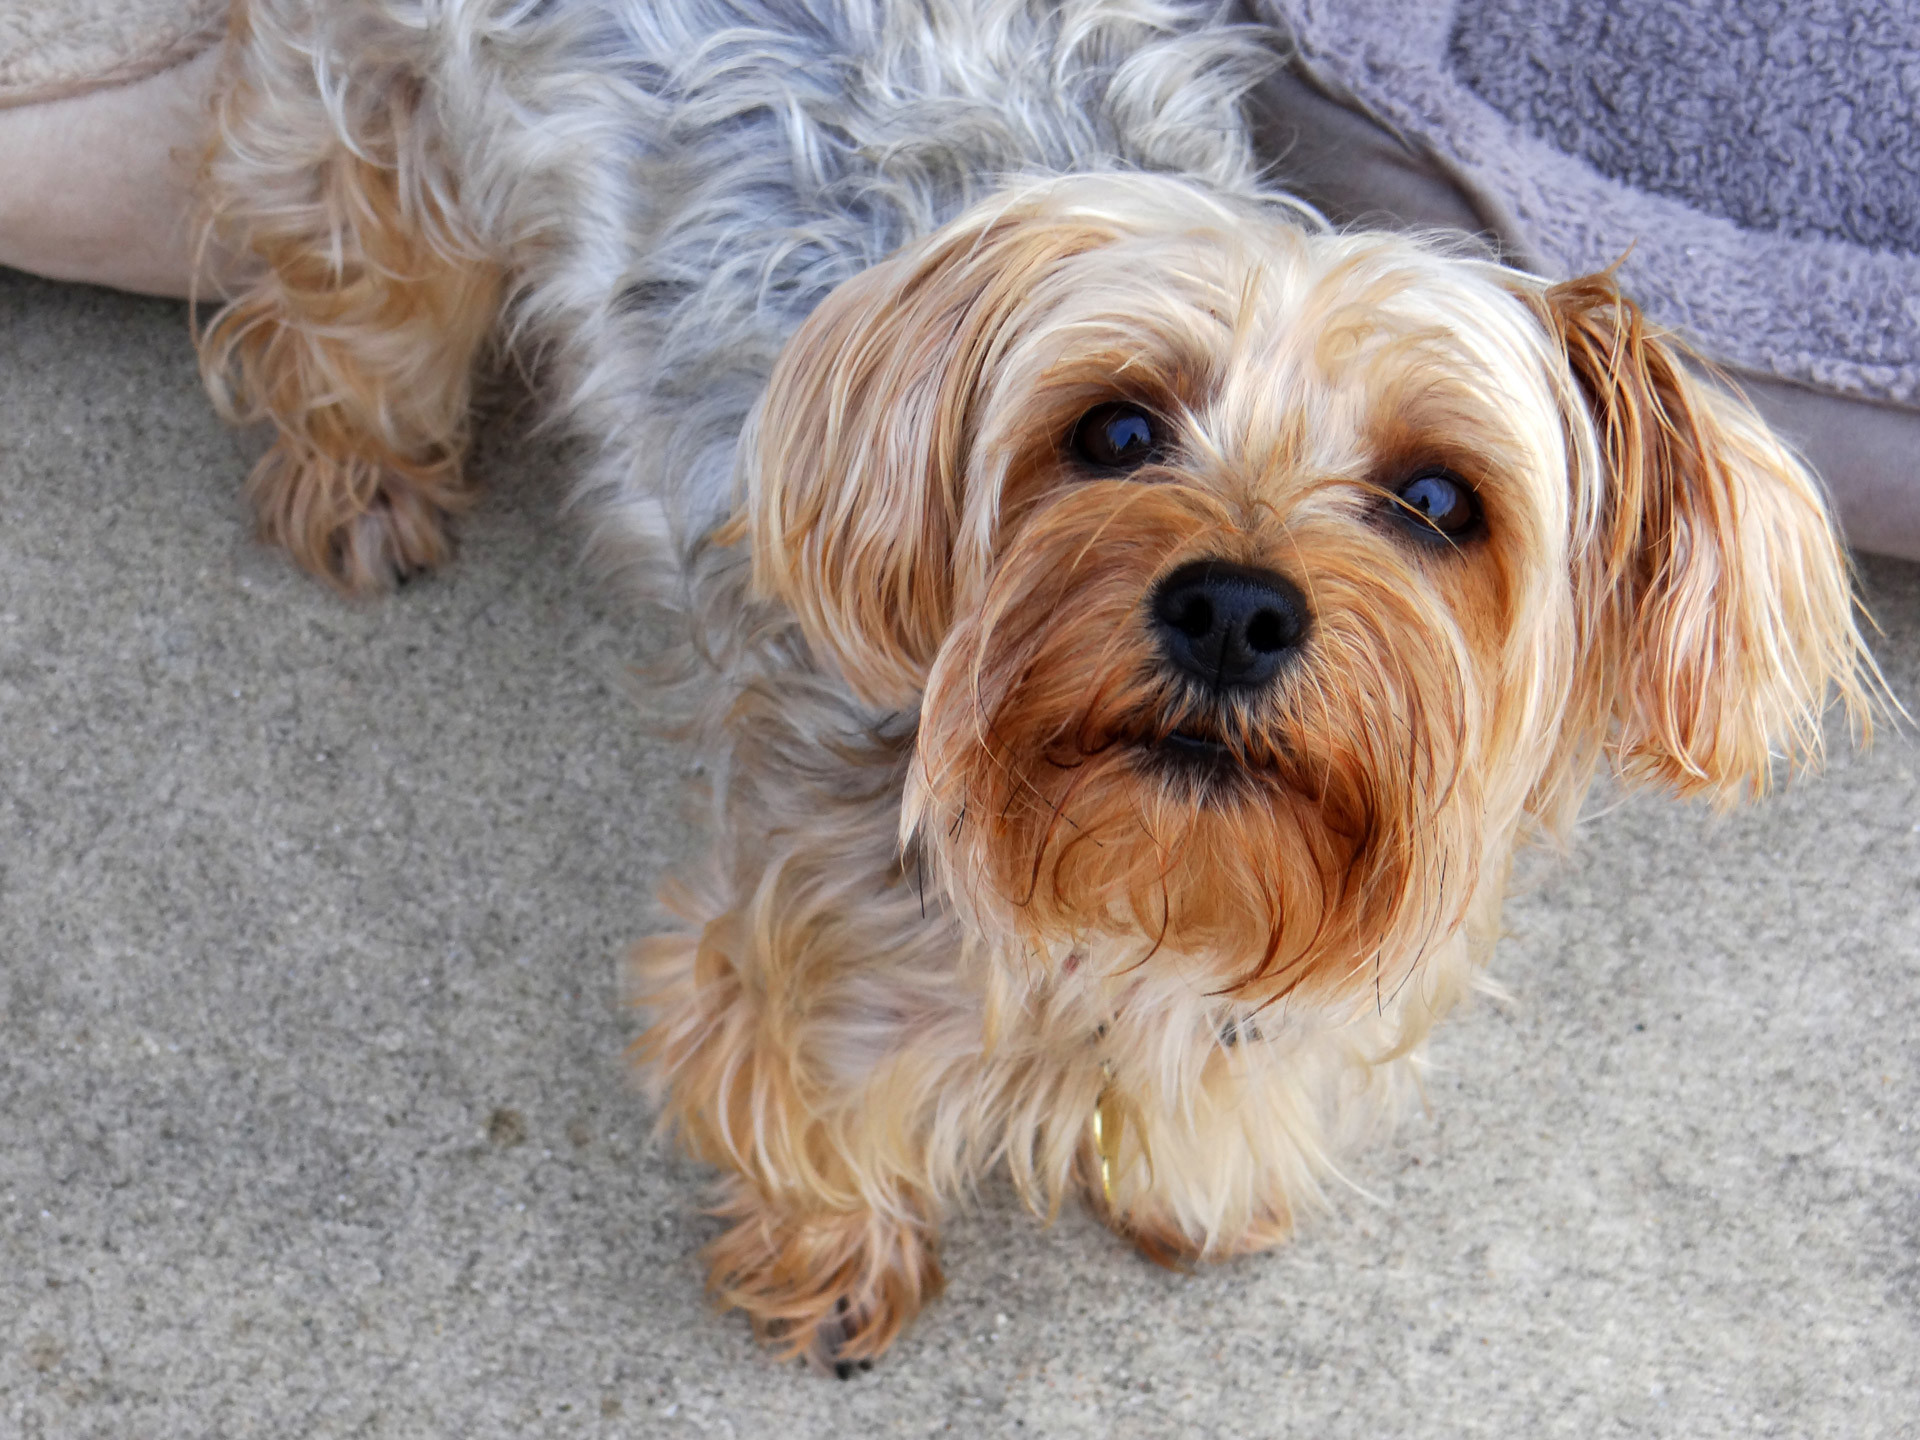 Yorkie Puppy Free Stock Photo HD – Public Domain Pictures